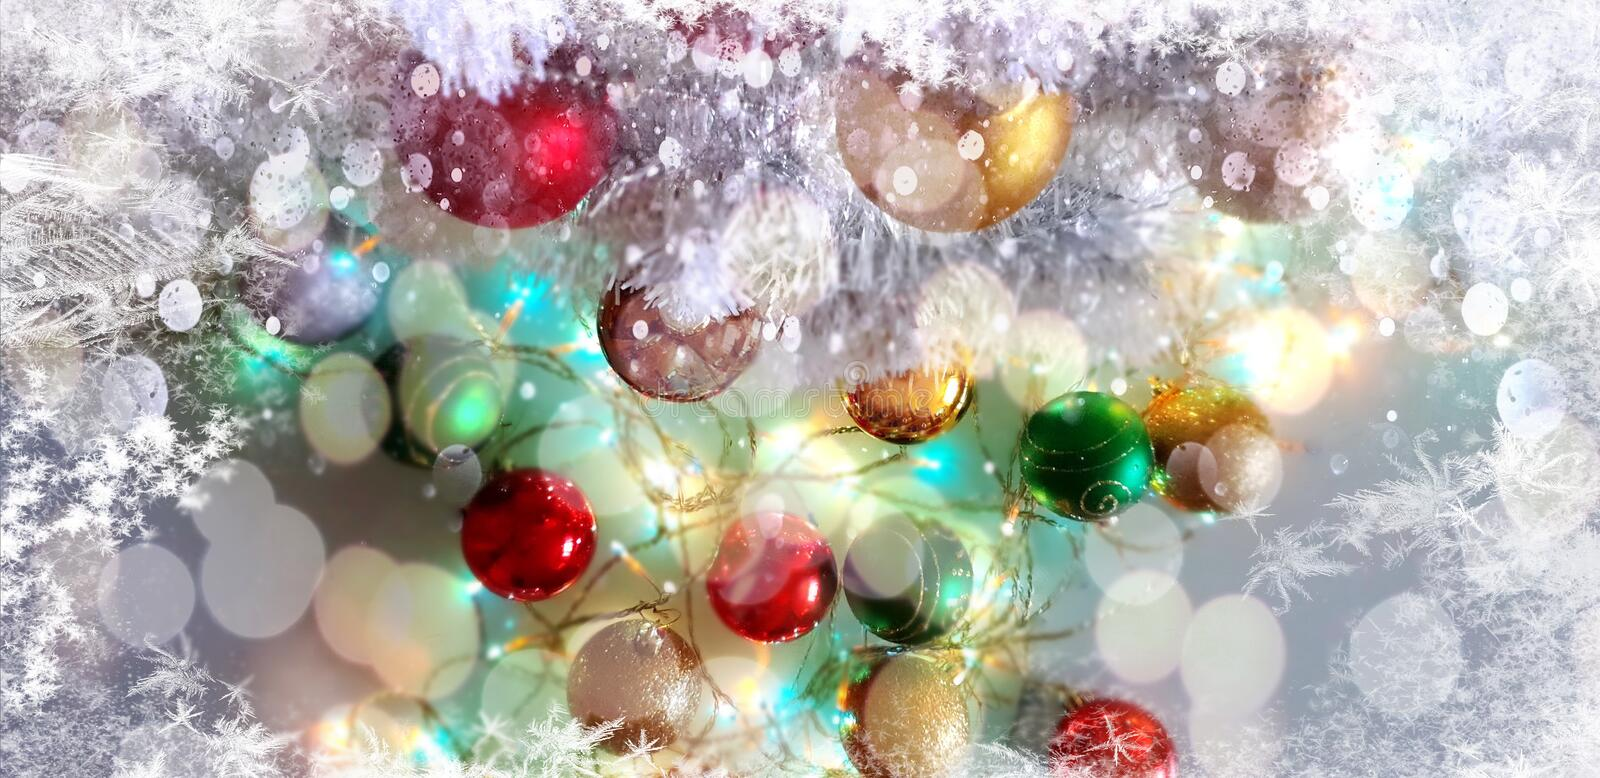 Christmas tree holiday white gold silver red green balls with snowflakes wallpaper light decoration lights colorful new year blurr. Modern Christmas tree holiday stock image